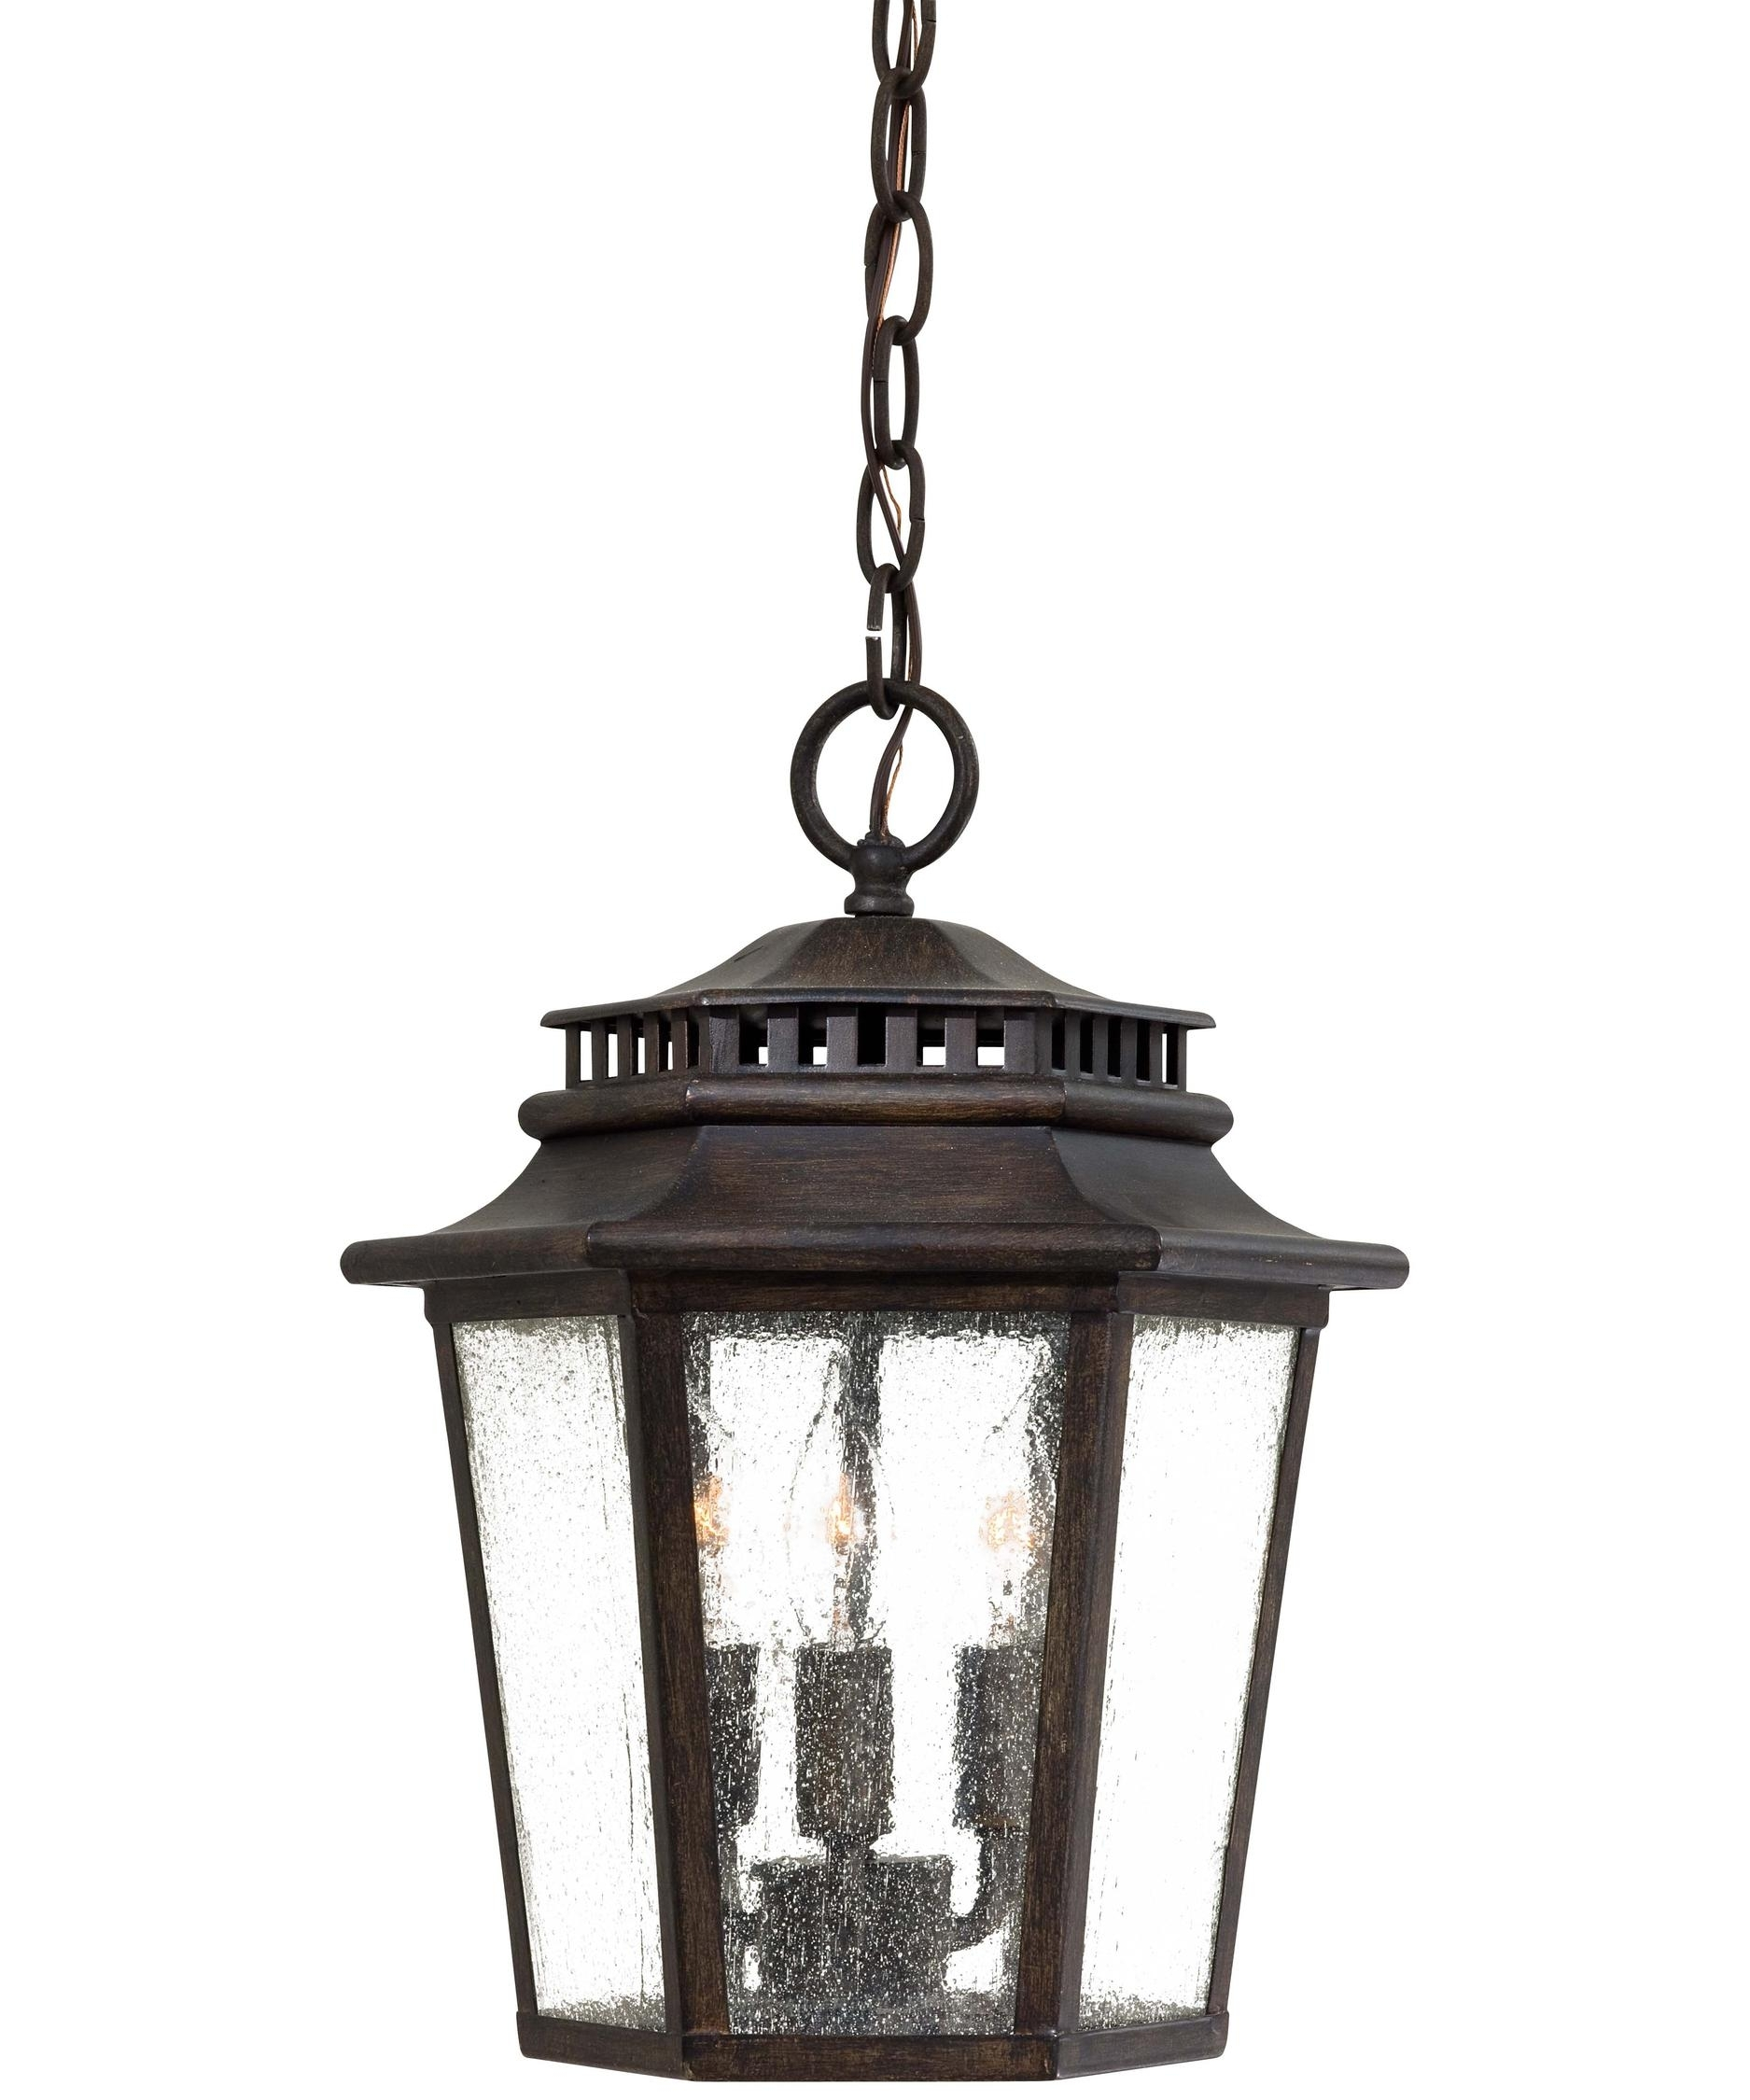 Minka Lavery 8274 Wickford Bay 11 Inch Wide 3 Light Outdoor Hanging Inside Outdoor Hanging Metal Lanterns (View 8 of 15)